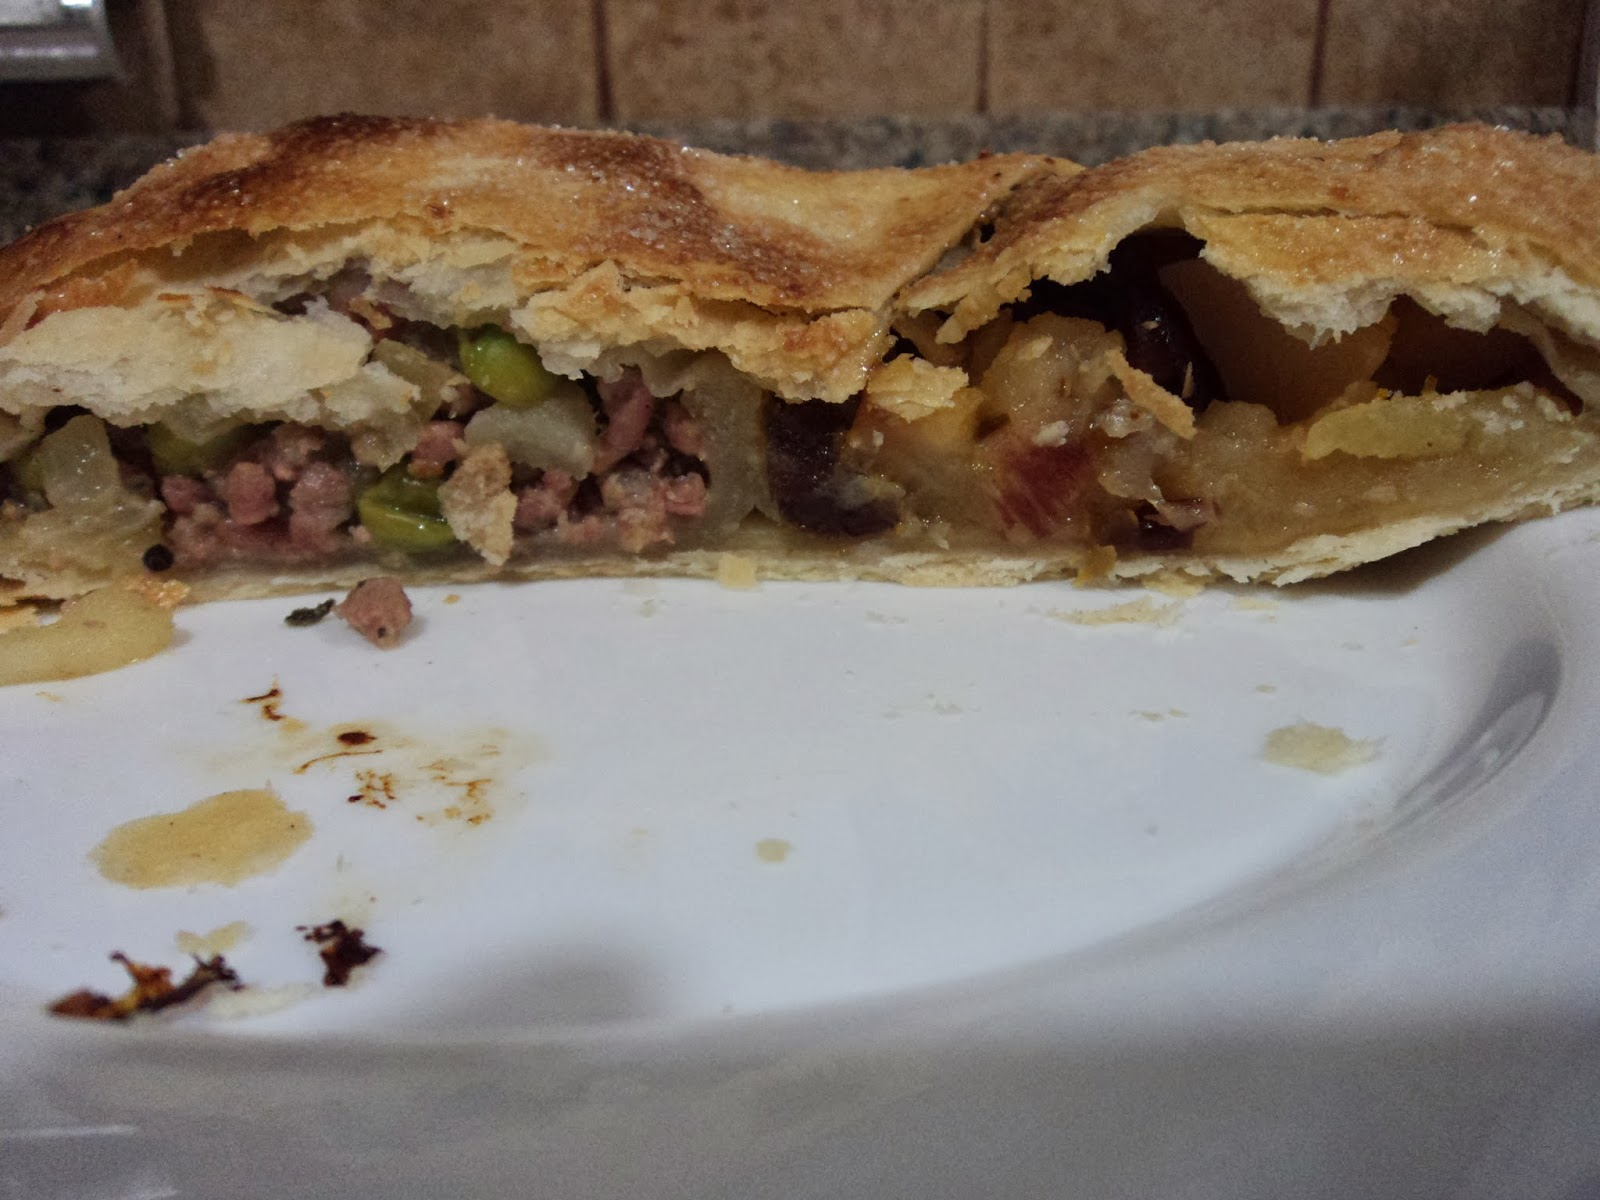 bedfordshire clanger the bedfordshire clanger in sandy bedfordshire ...